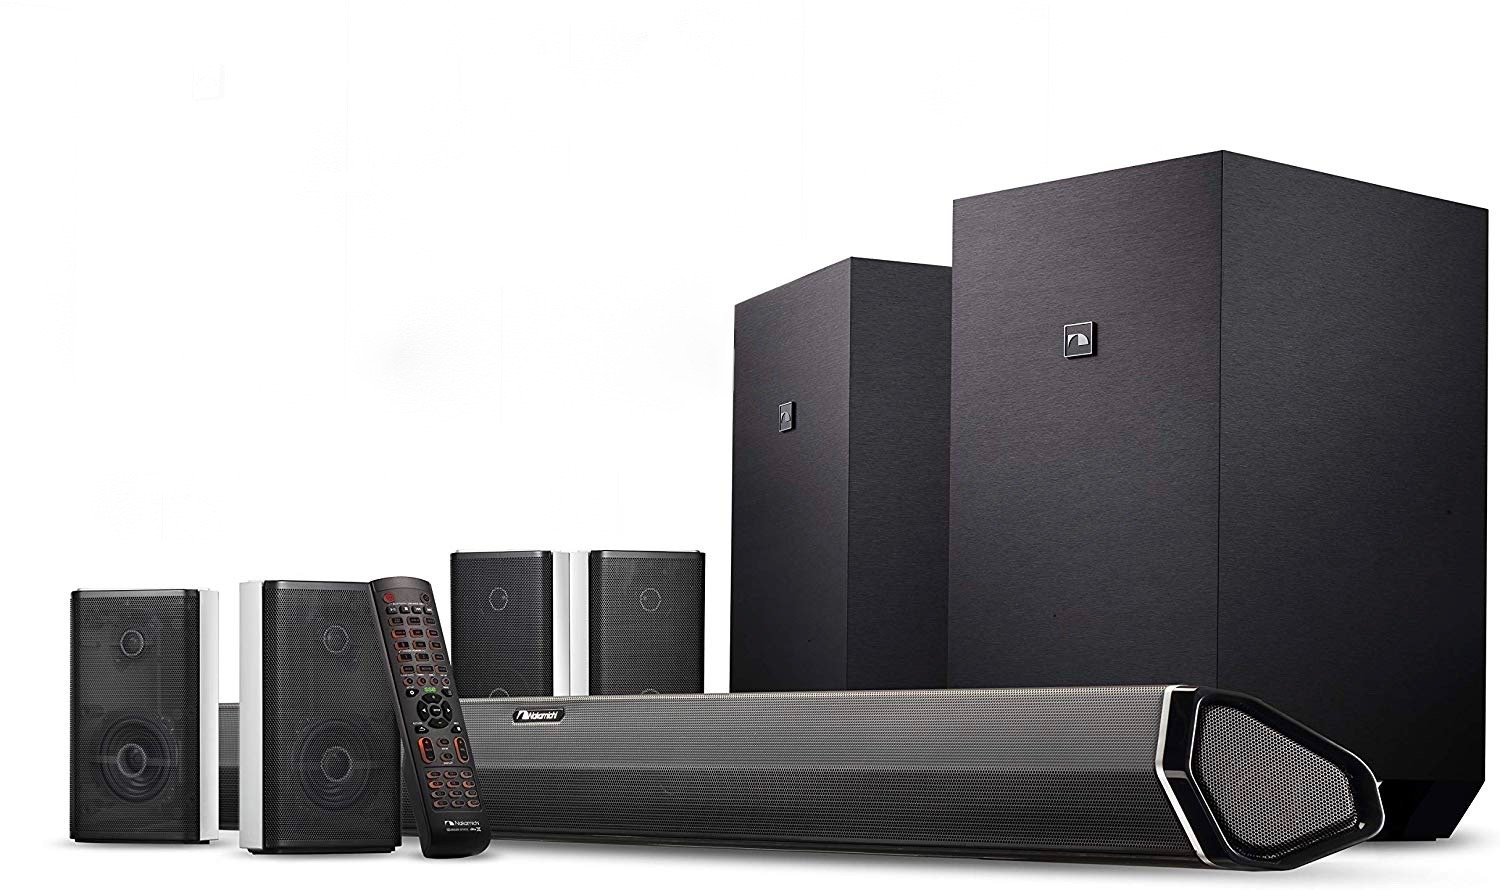 Nakamichi Shockwafe home theater system